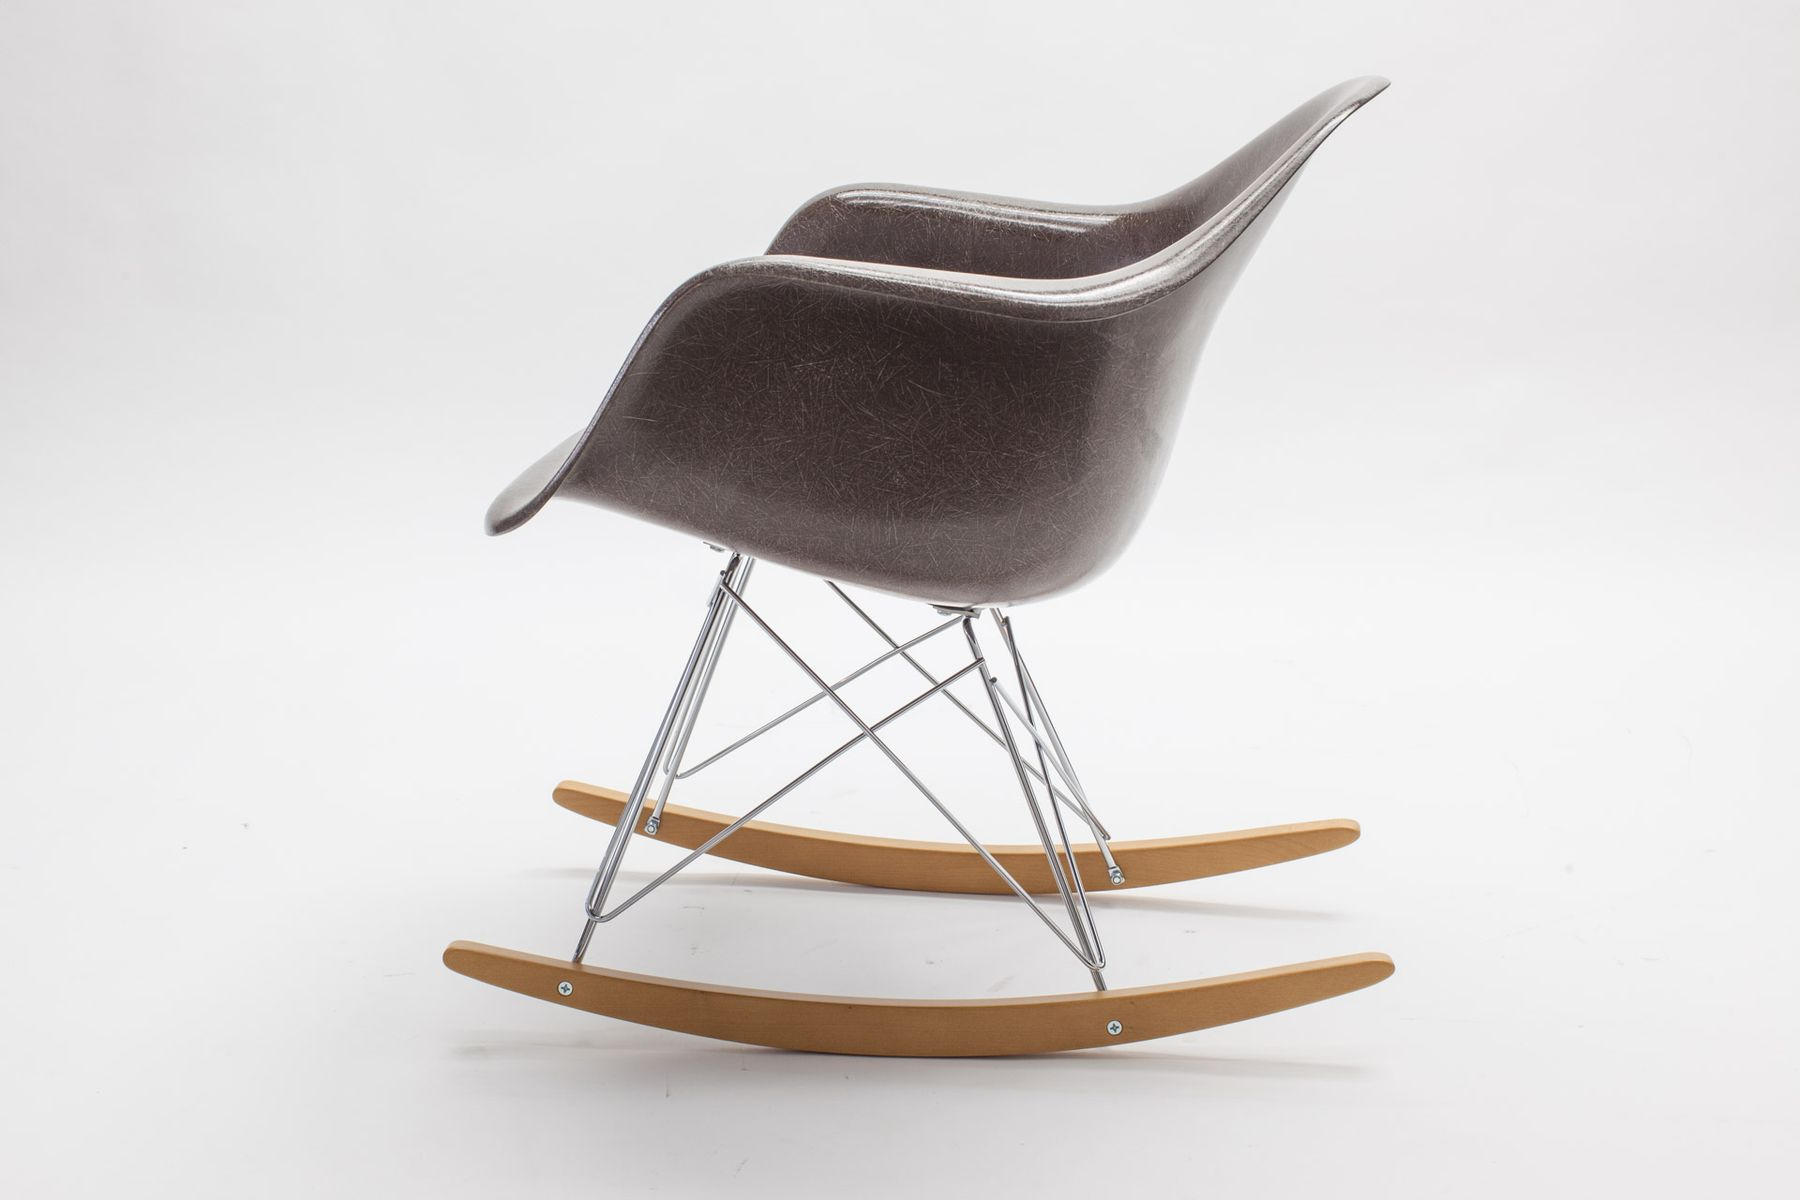 fiberglass rar rocking chair by charles eames for vitra 1960s for sale at pamono. Black Bedroom Furniture Sets. Home Design Ideas